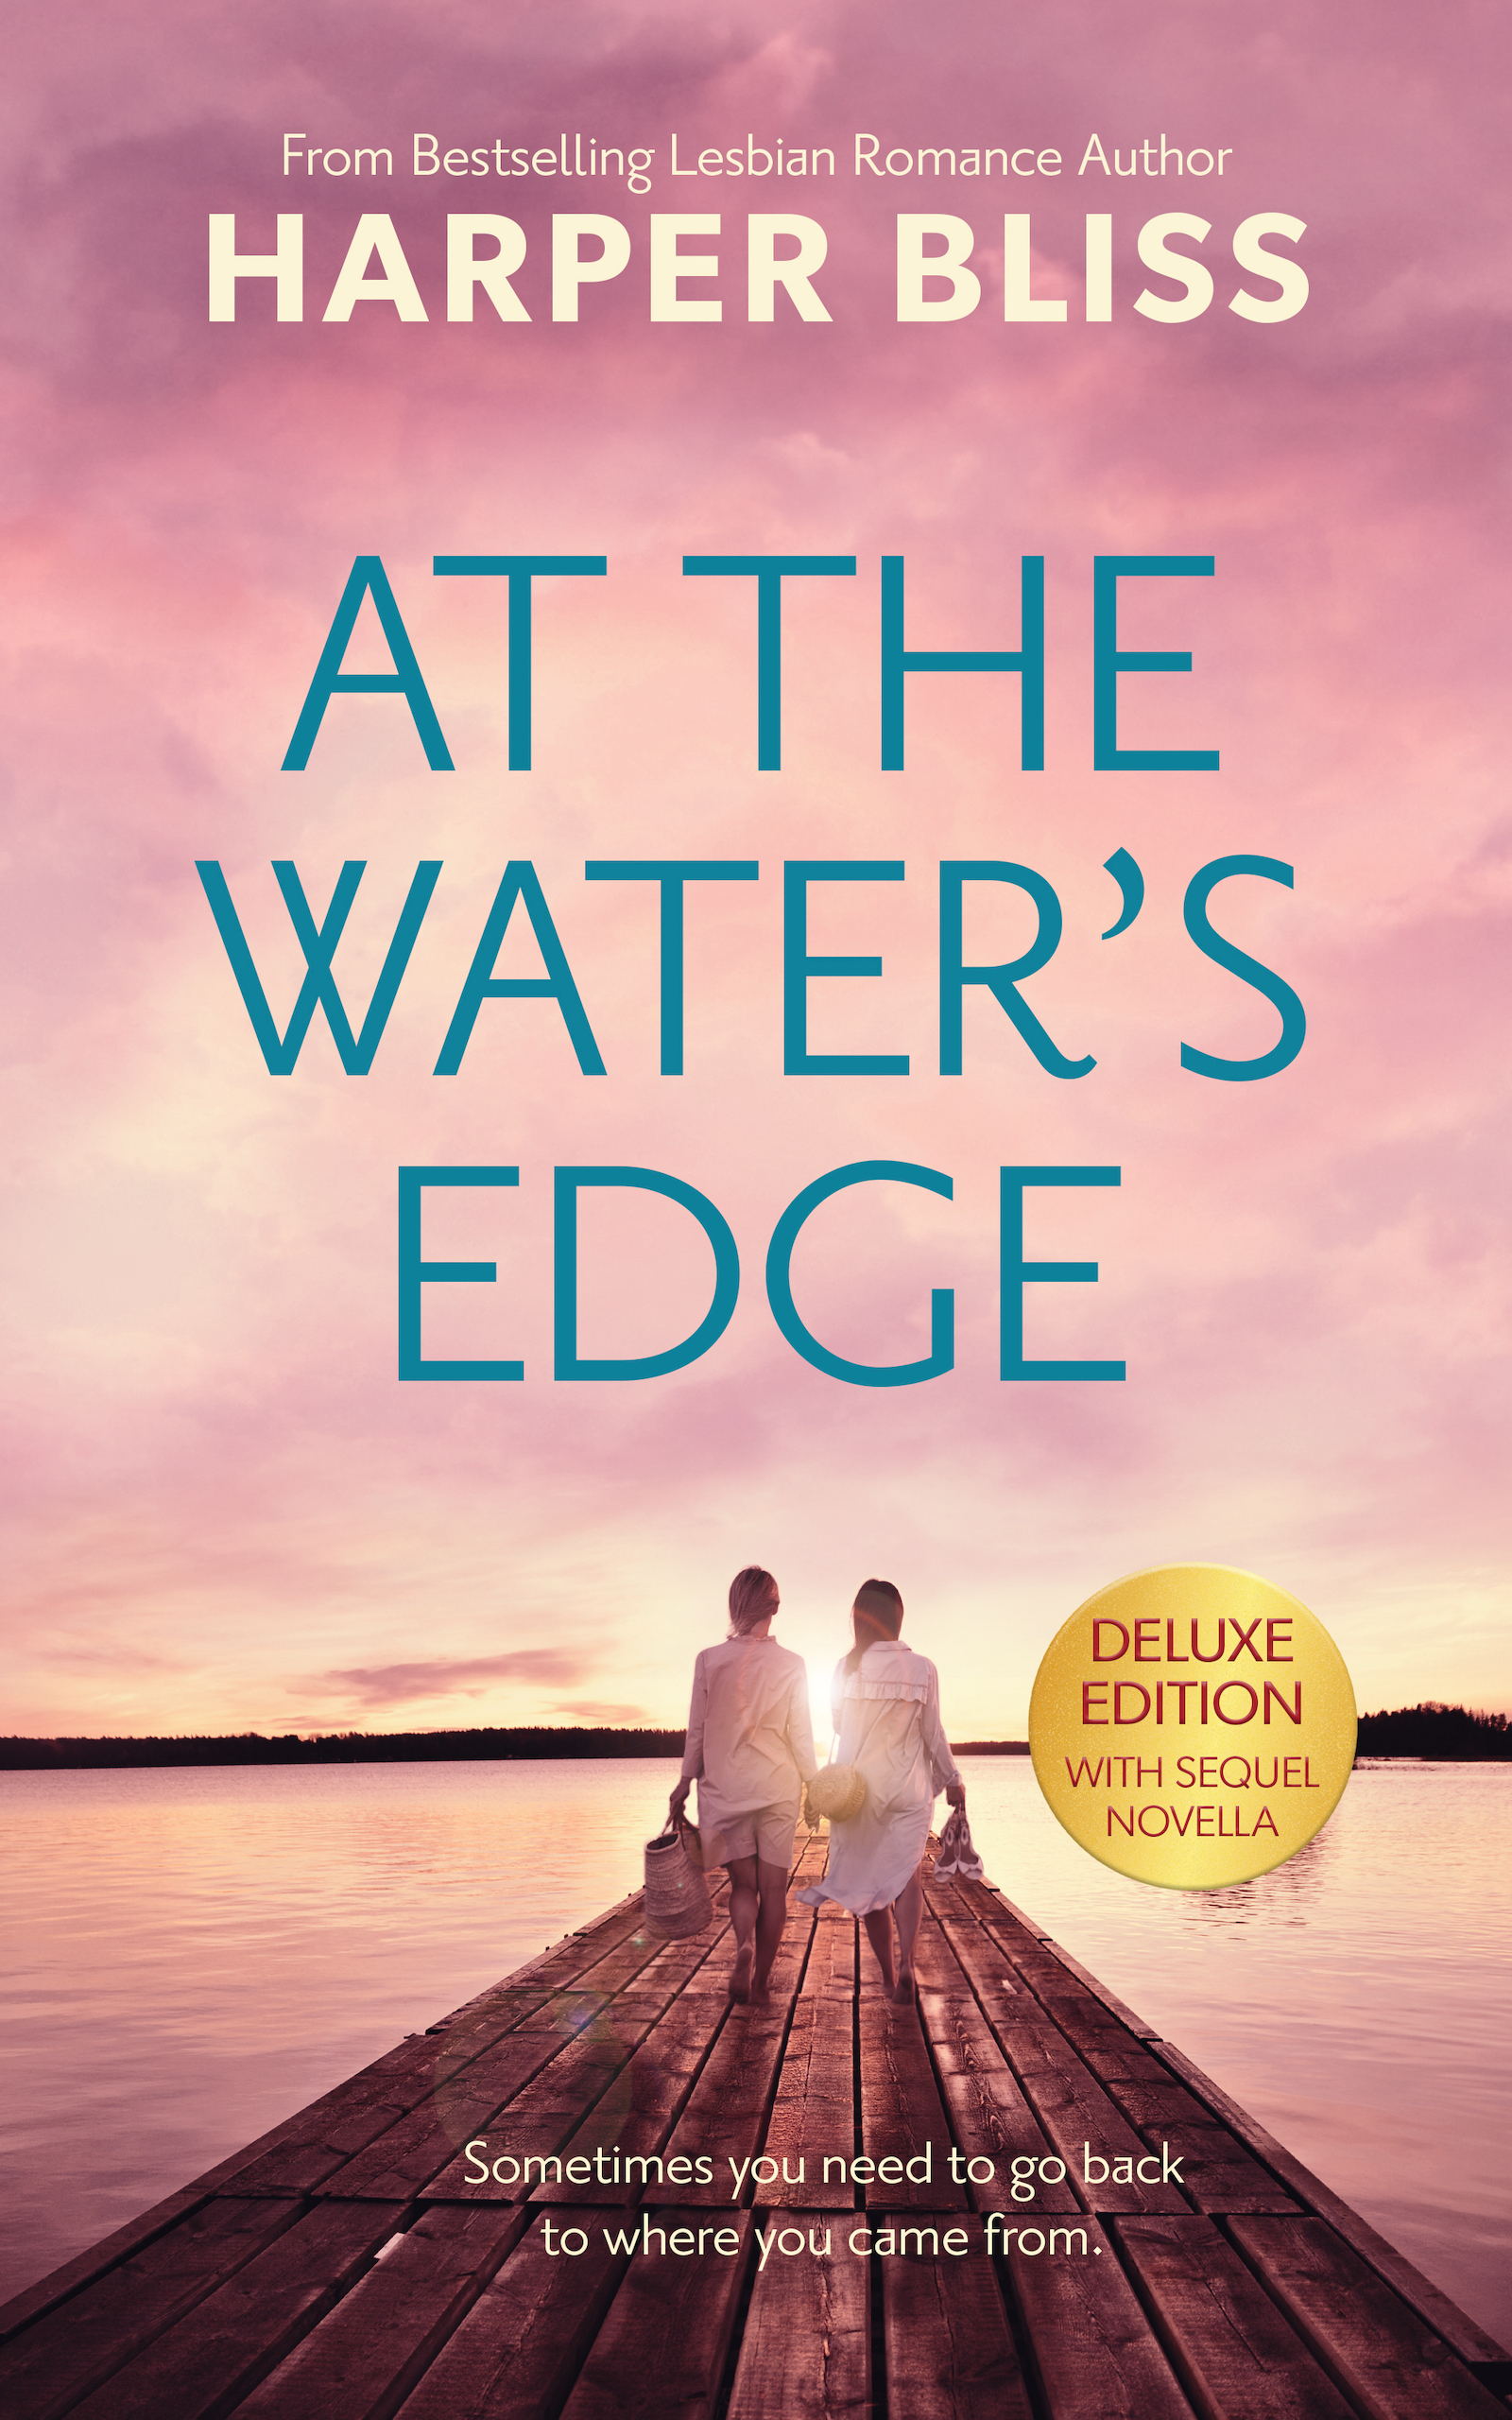 At the Water's Edge: Deluxe Edition